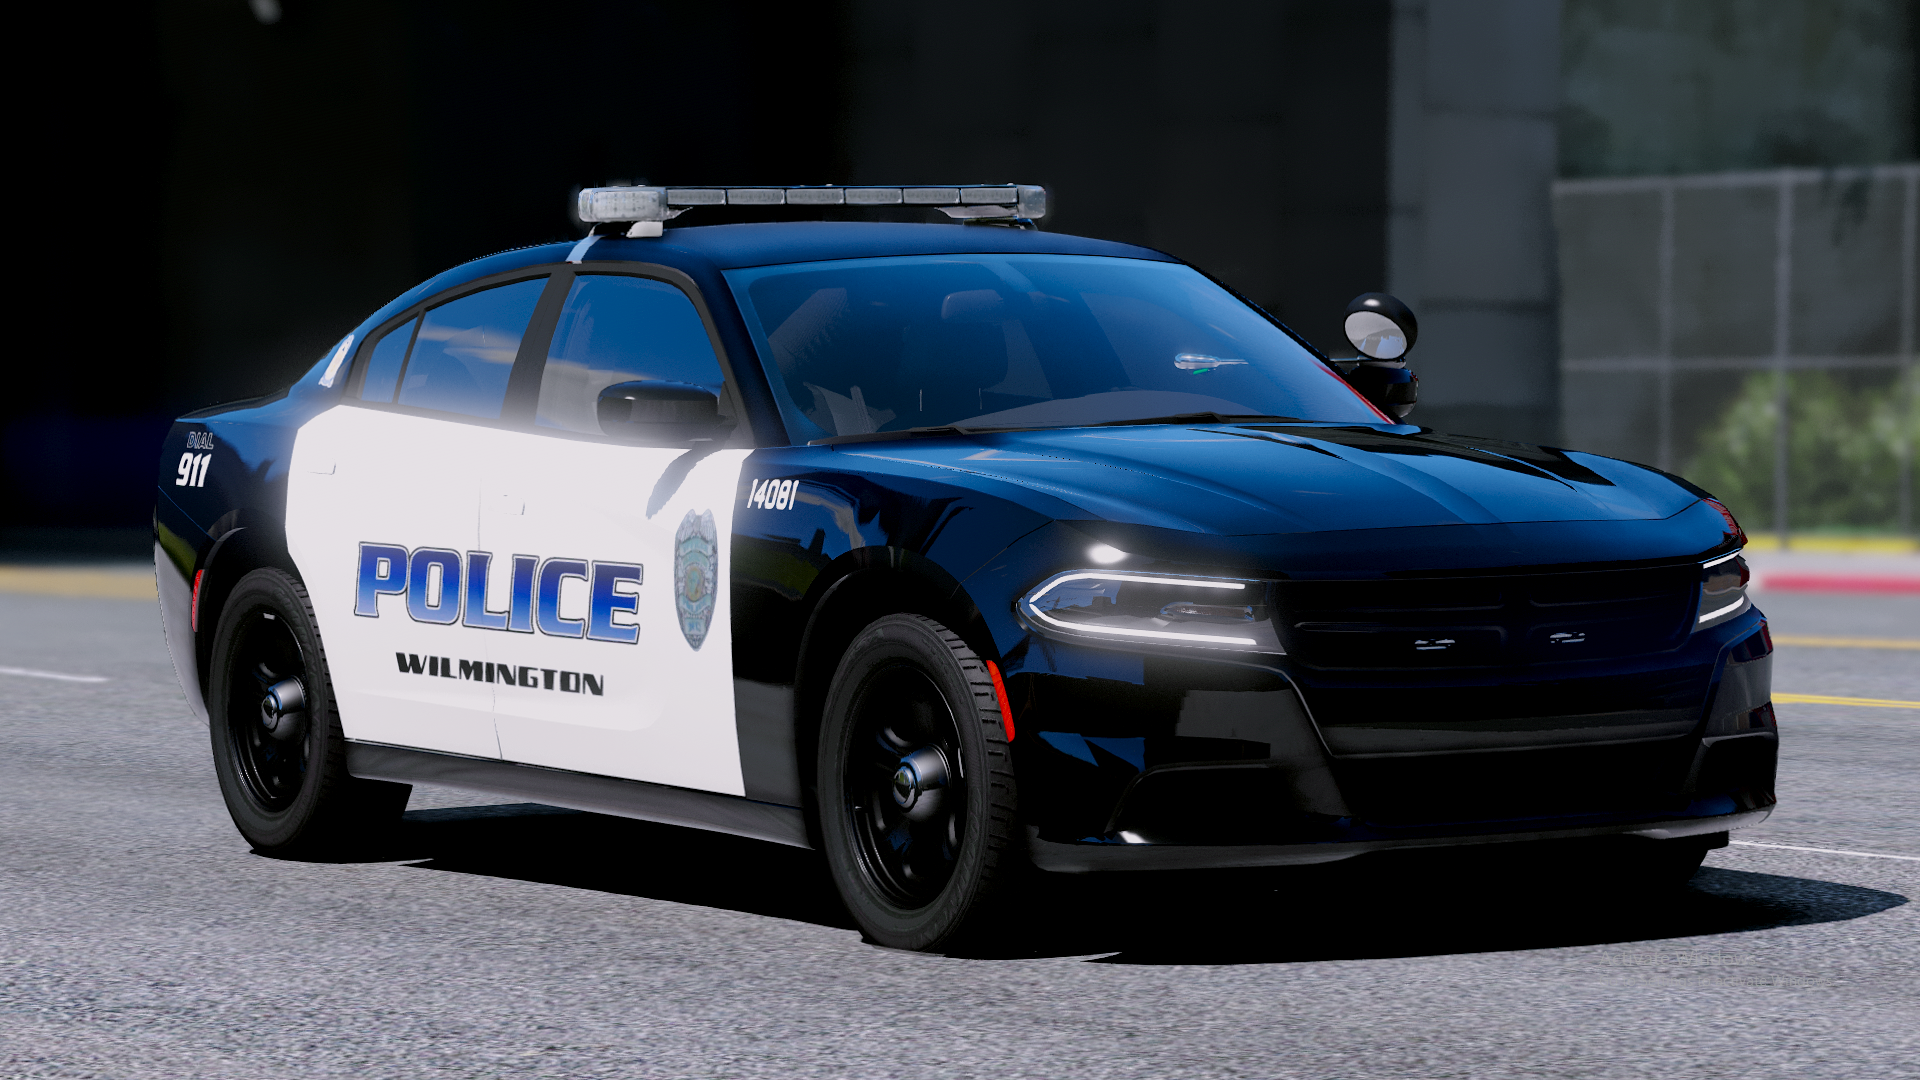 2018 WPD Charger